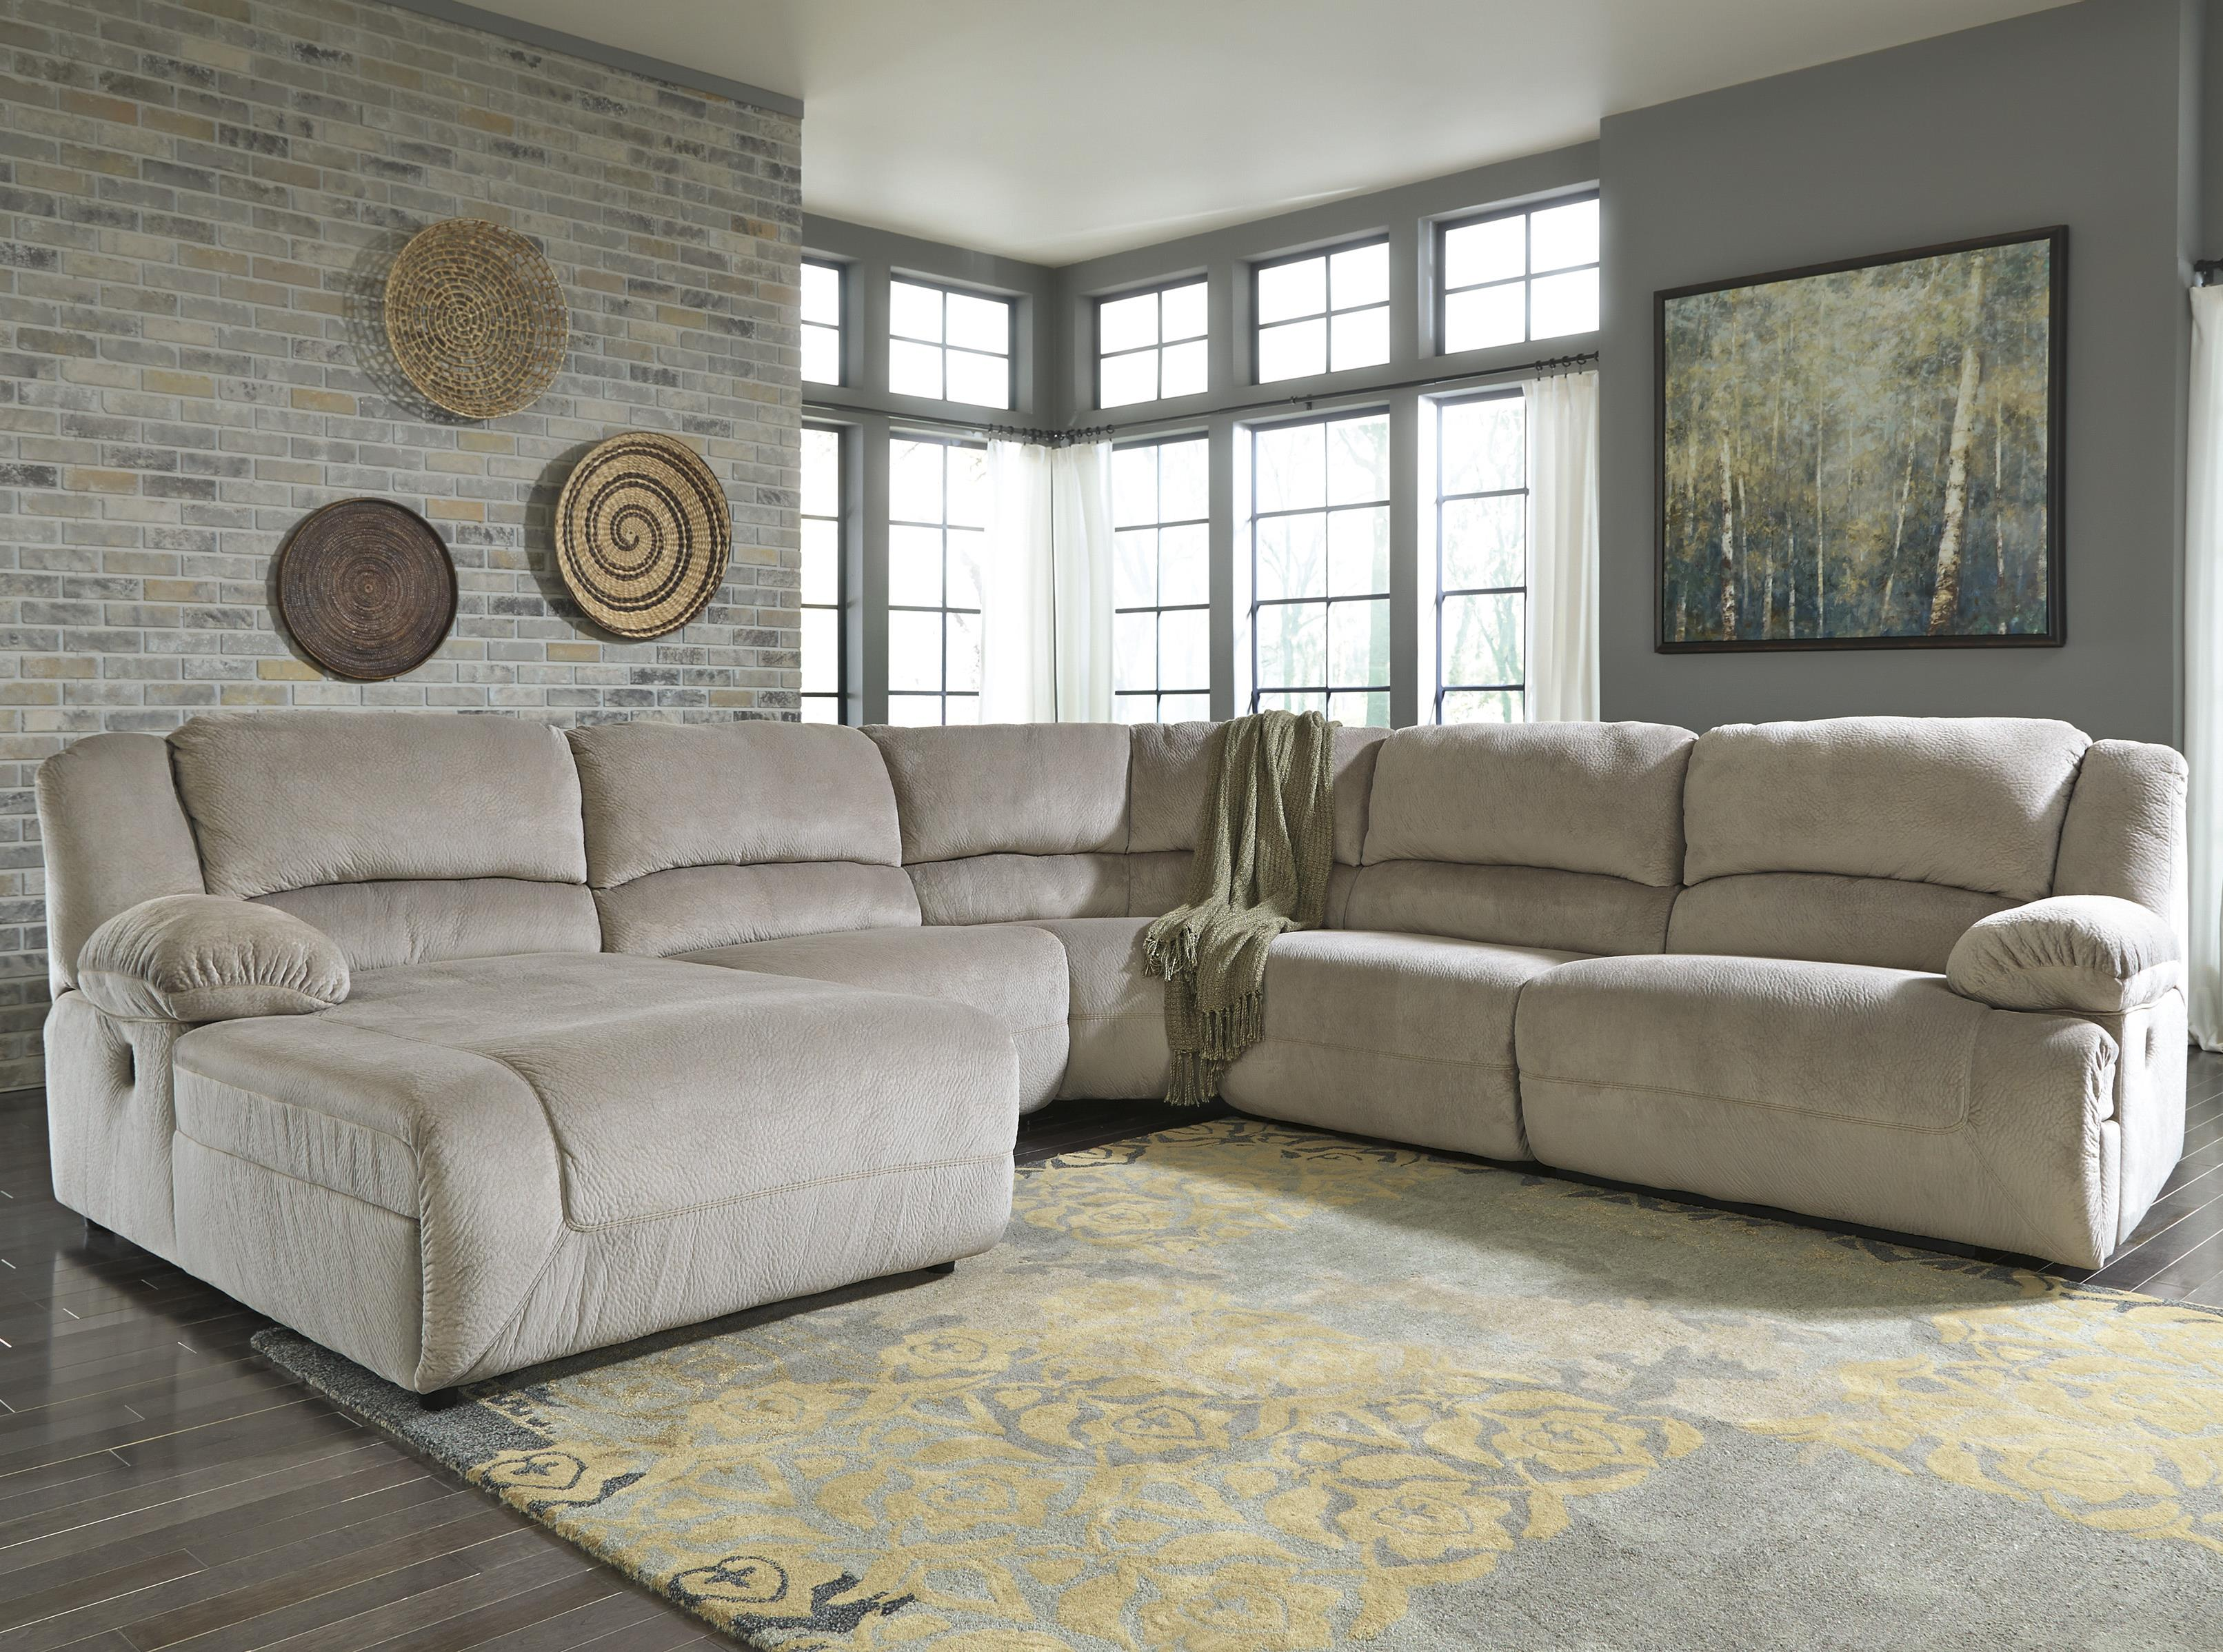 Signature Design by Ashley Toletta - Granite Reclining Sectional with Chaise - Item Number: 5670305+46+77+19+41